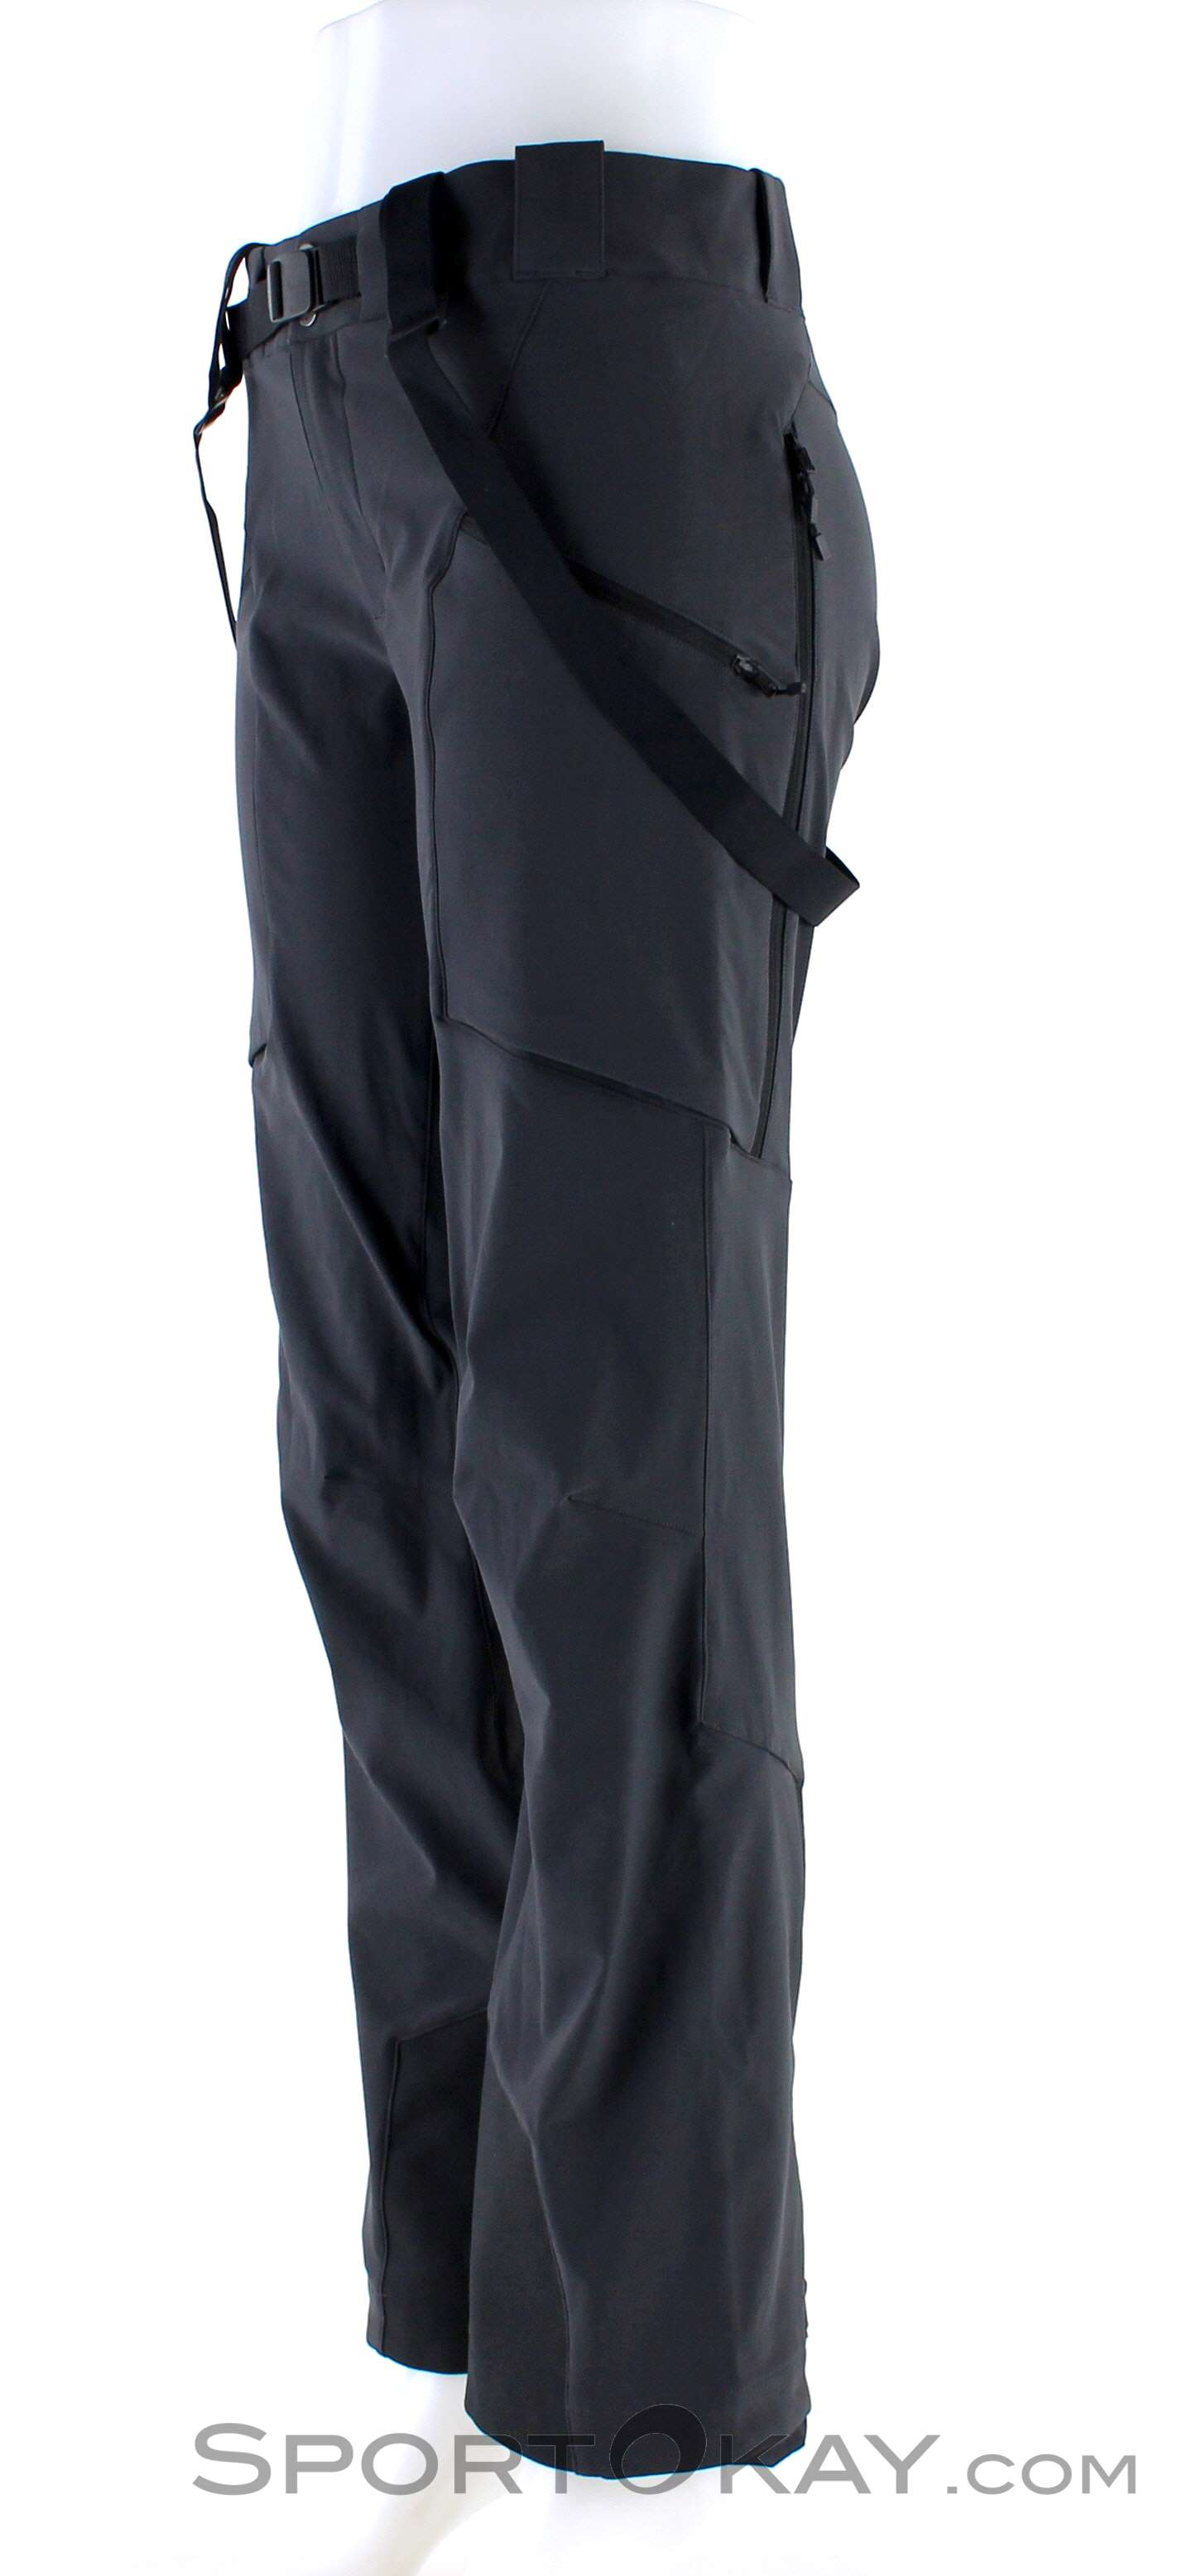 b158218ad Black Diamond Black Diamond Dawn Patrol Pant Womens Ski Touring Pants